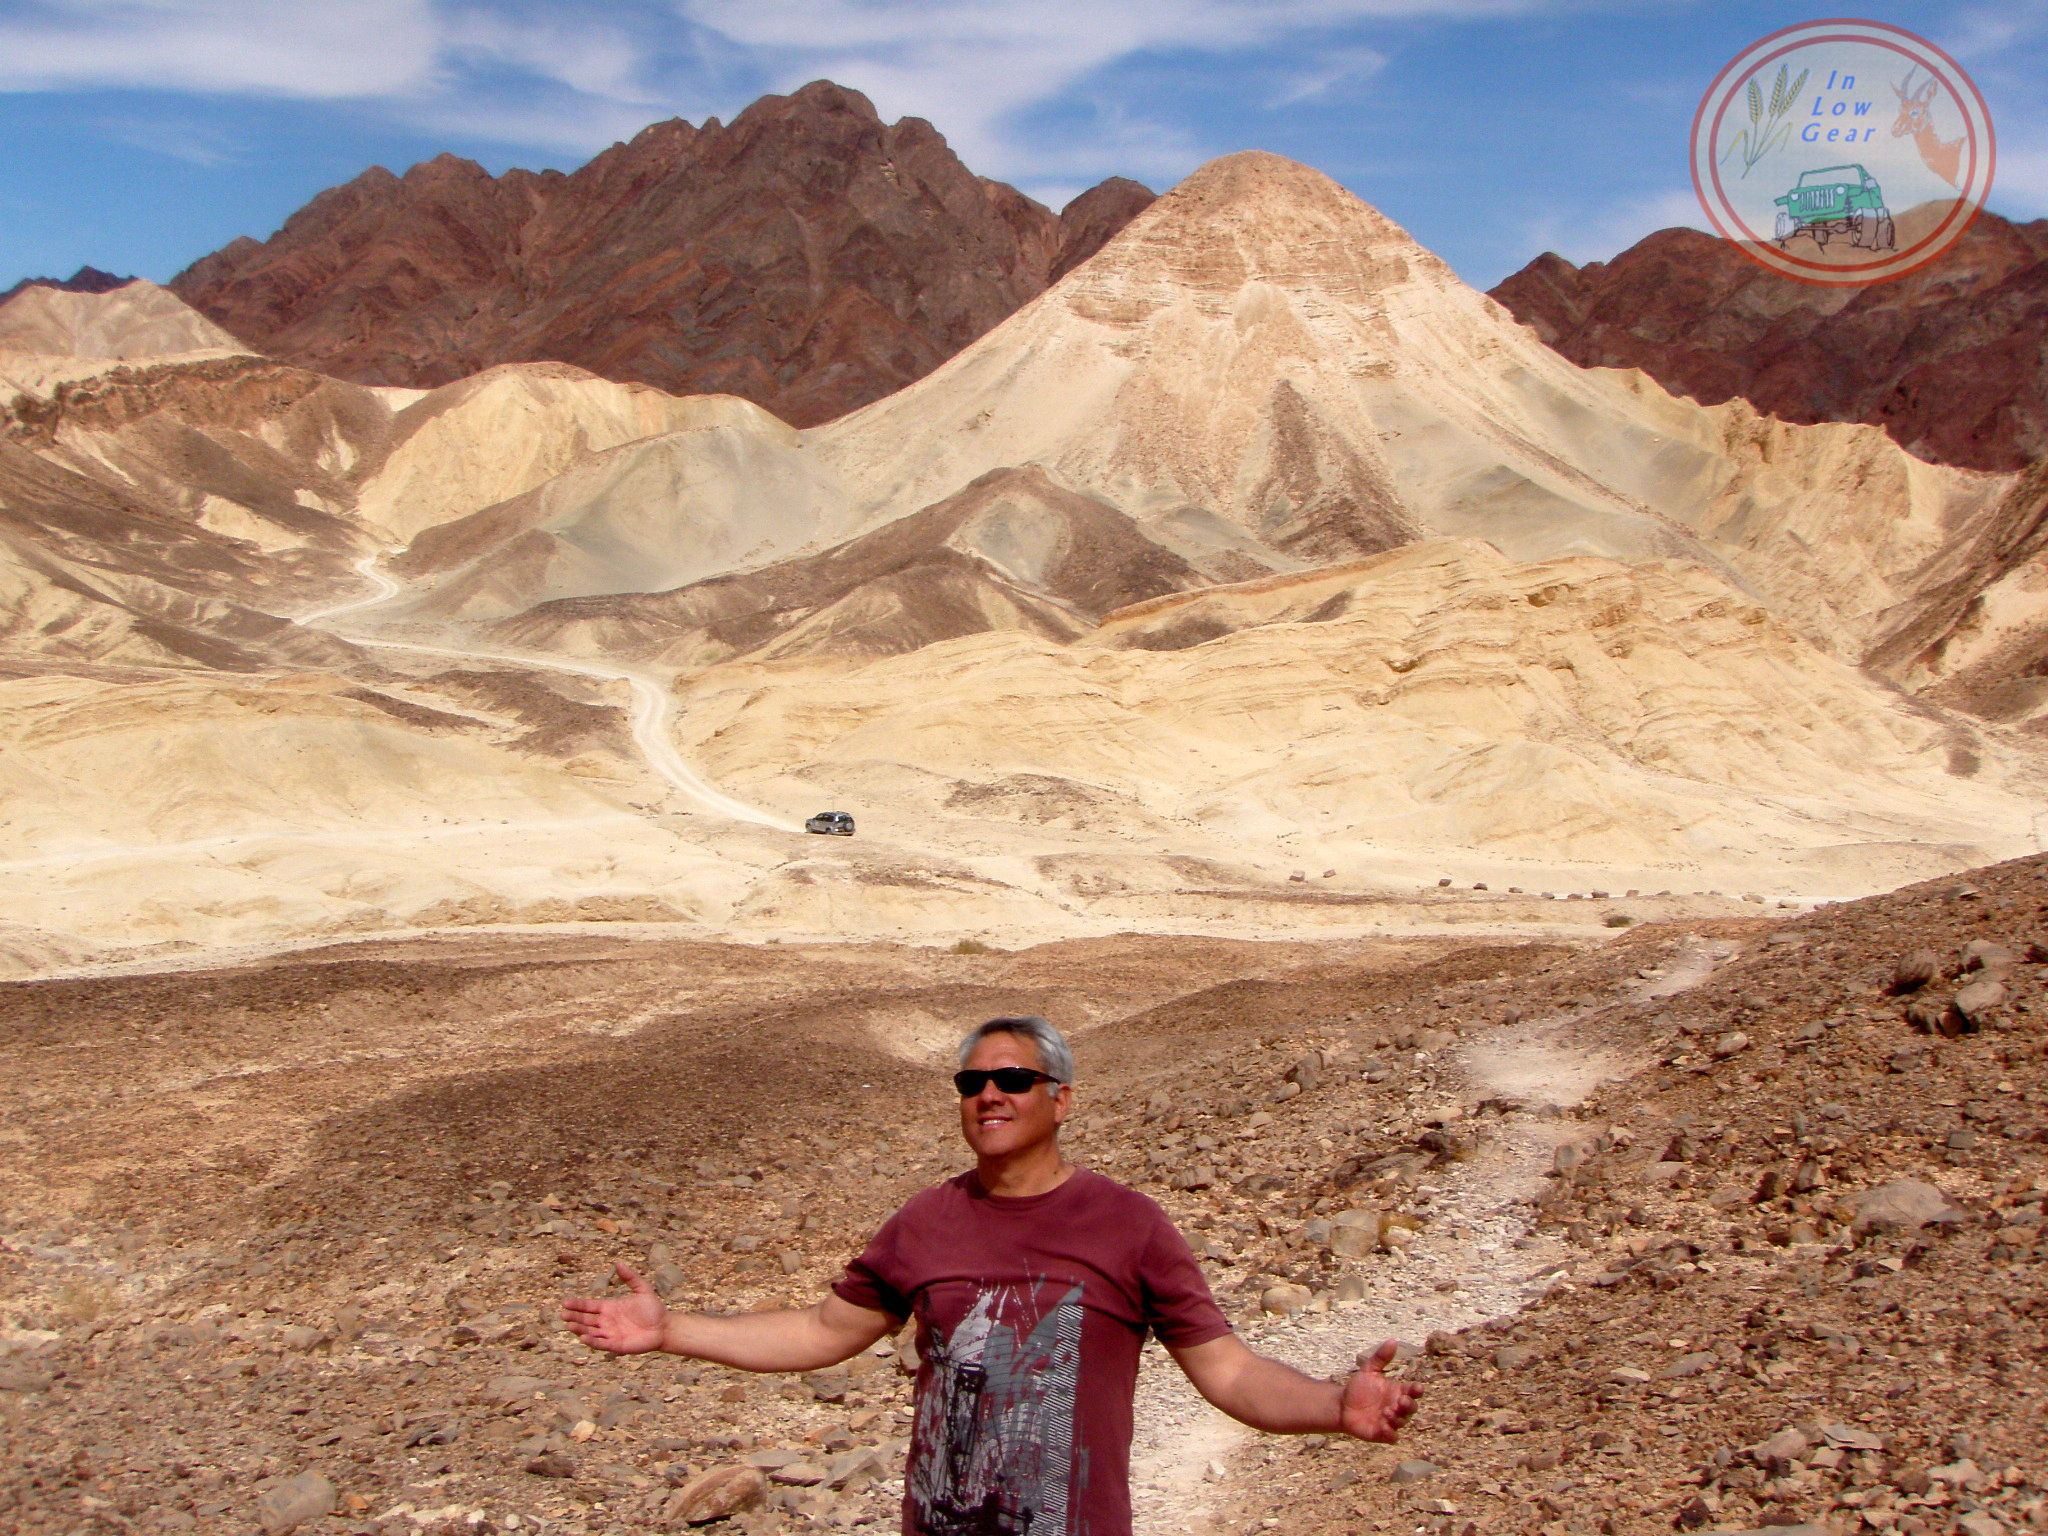 Off road 4x4 jeep tours: Massif Eilat, Har Rehavav